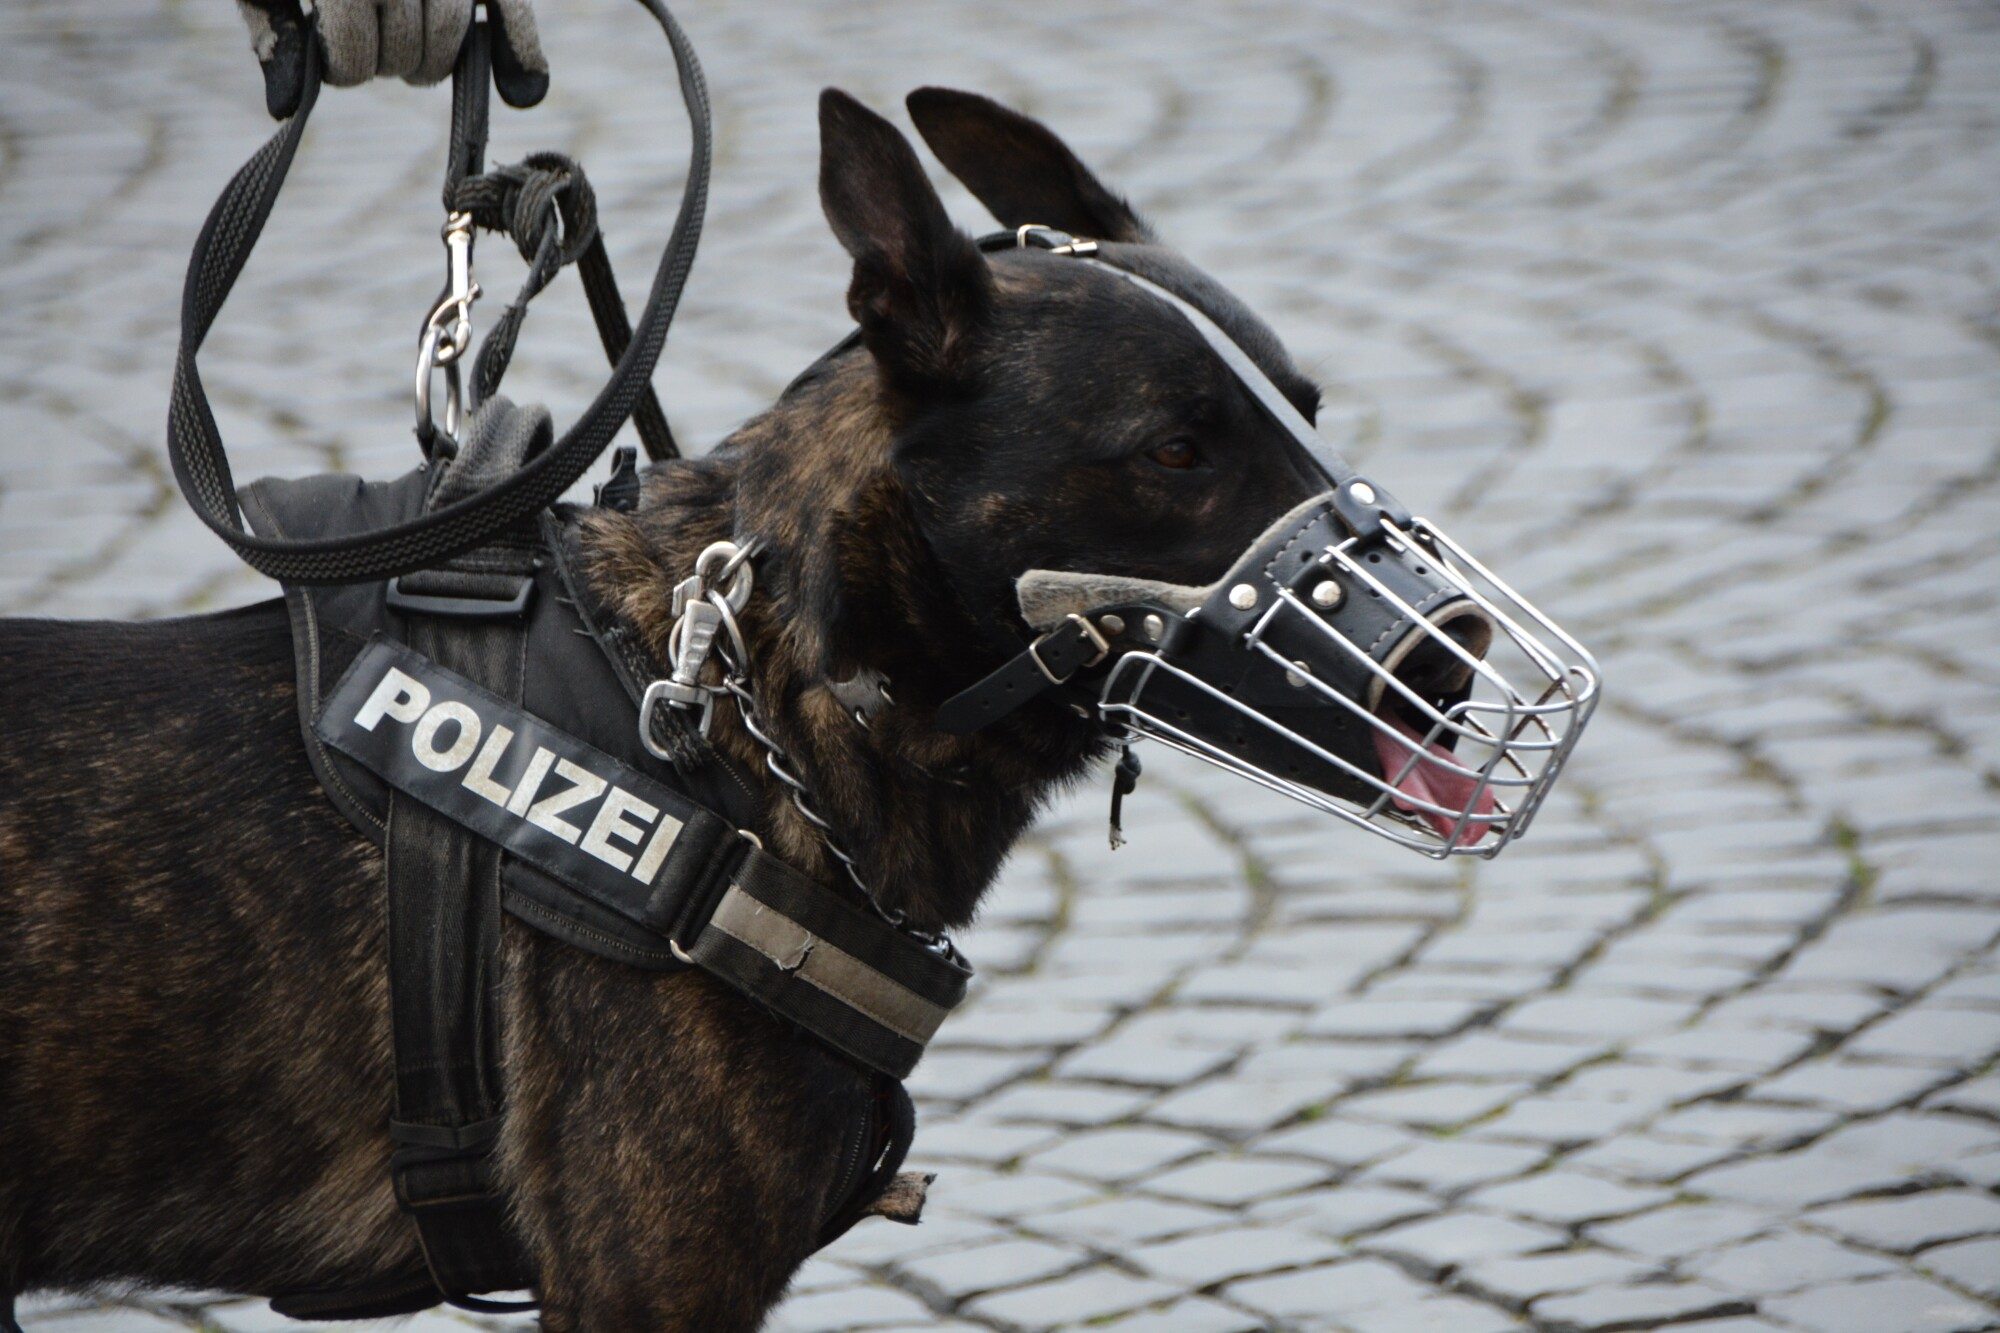 Candid K9 Concepts: What Are Police Dogs Exactly?